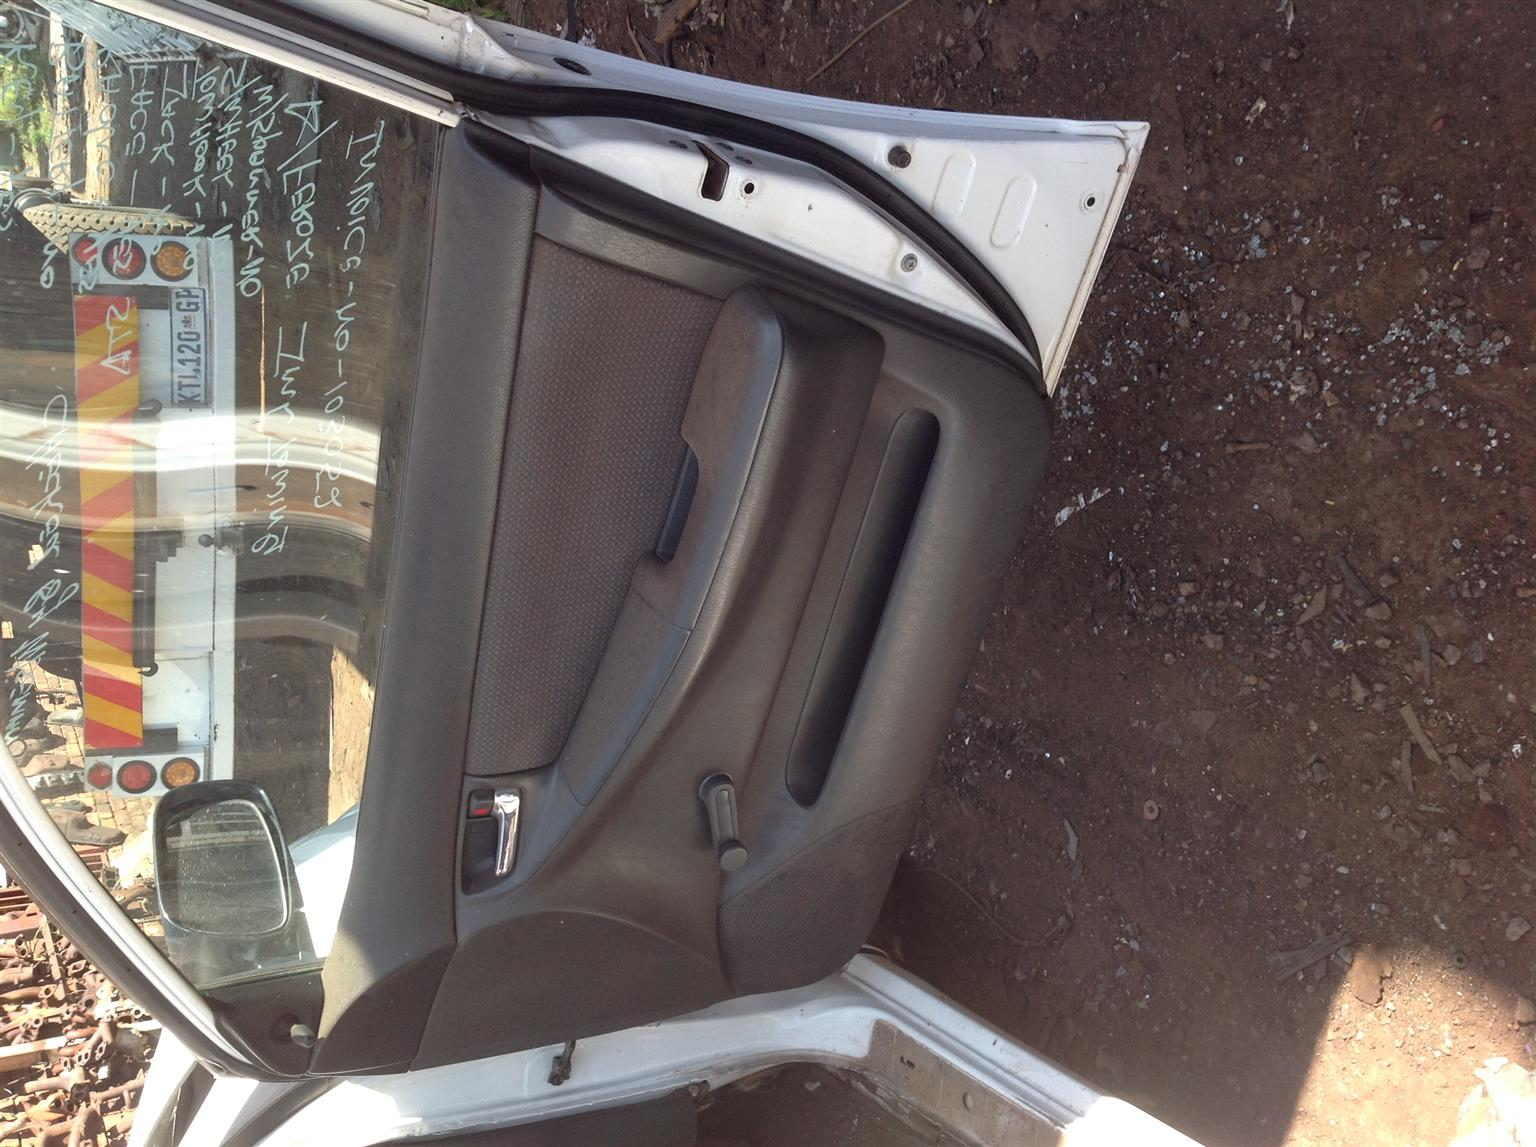 Stripping Toyota Corolla (RunX shape) 140i 2007 for Spares